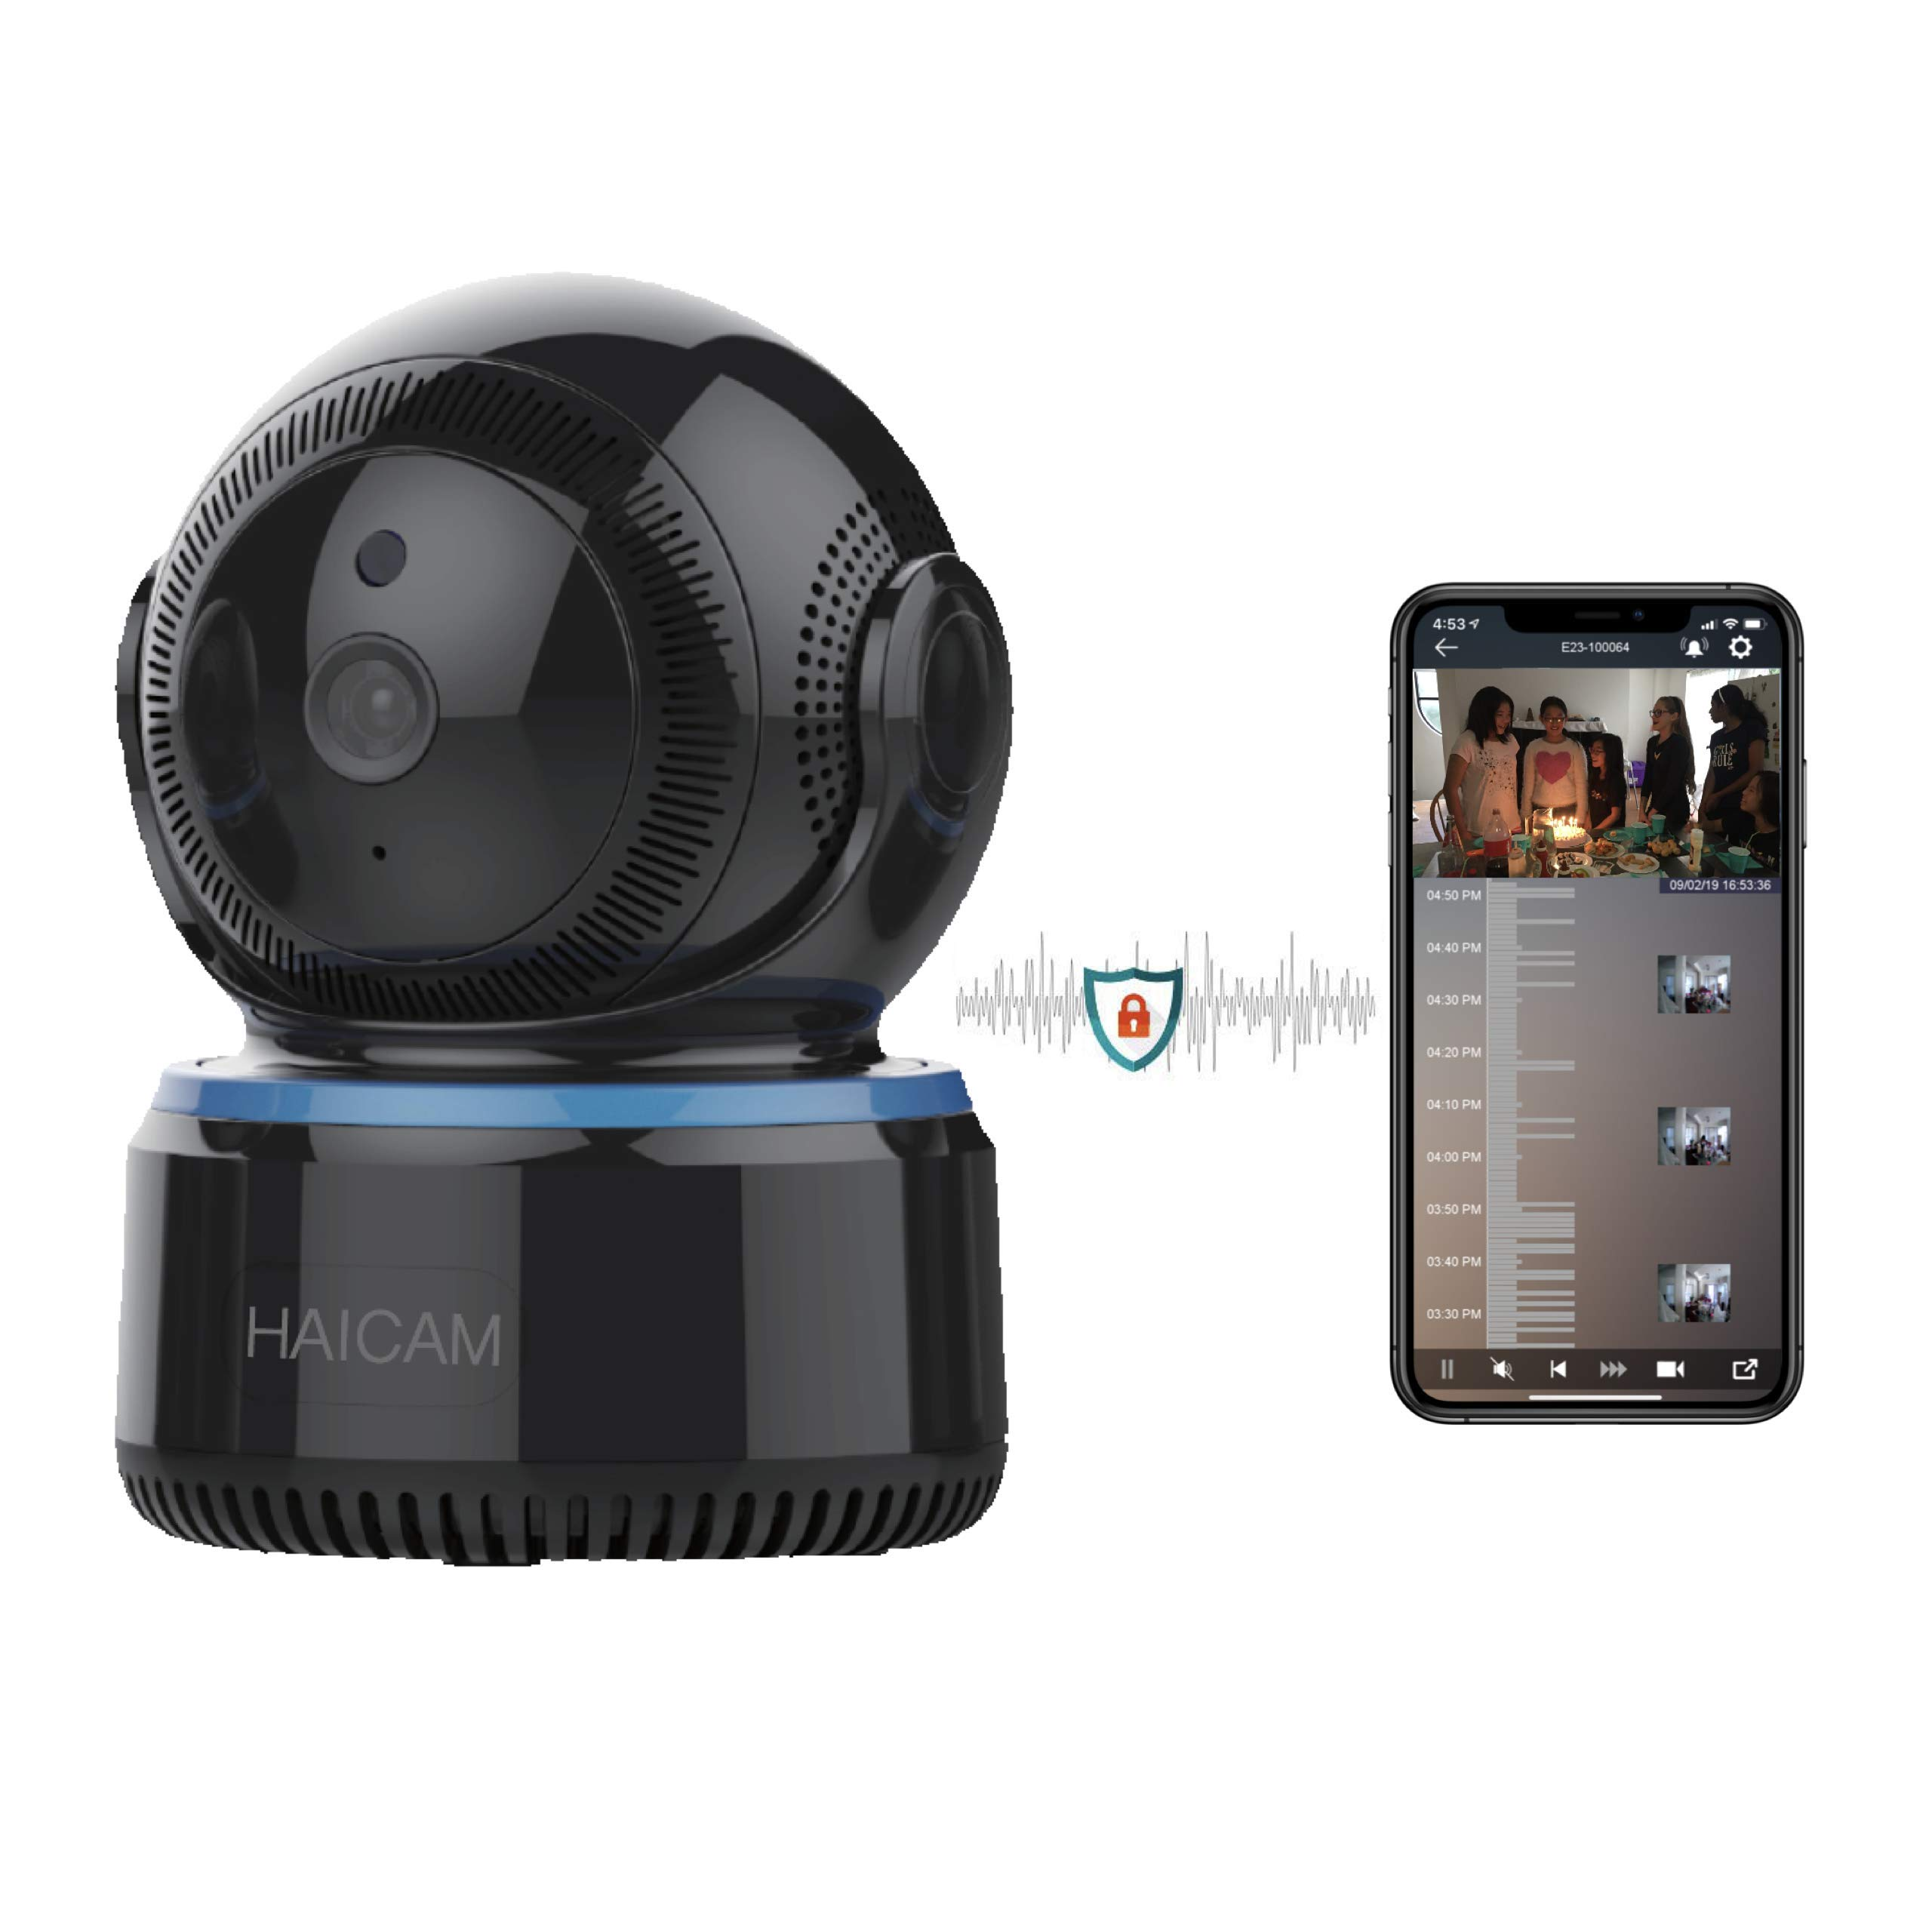 Haicam IP Camera End-to-End Encryption Home Security Surveillance Monitor with 2 Way Audio/Motion Sound Detection/Amazon/Apple/Google TV Apps - Cloud Service E23 by Haicam